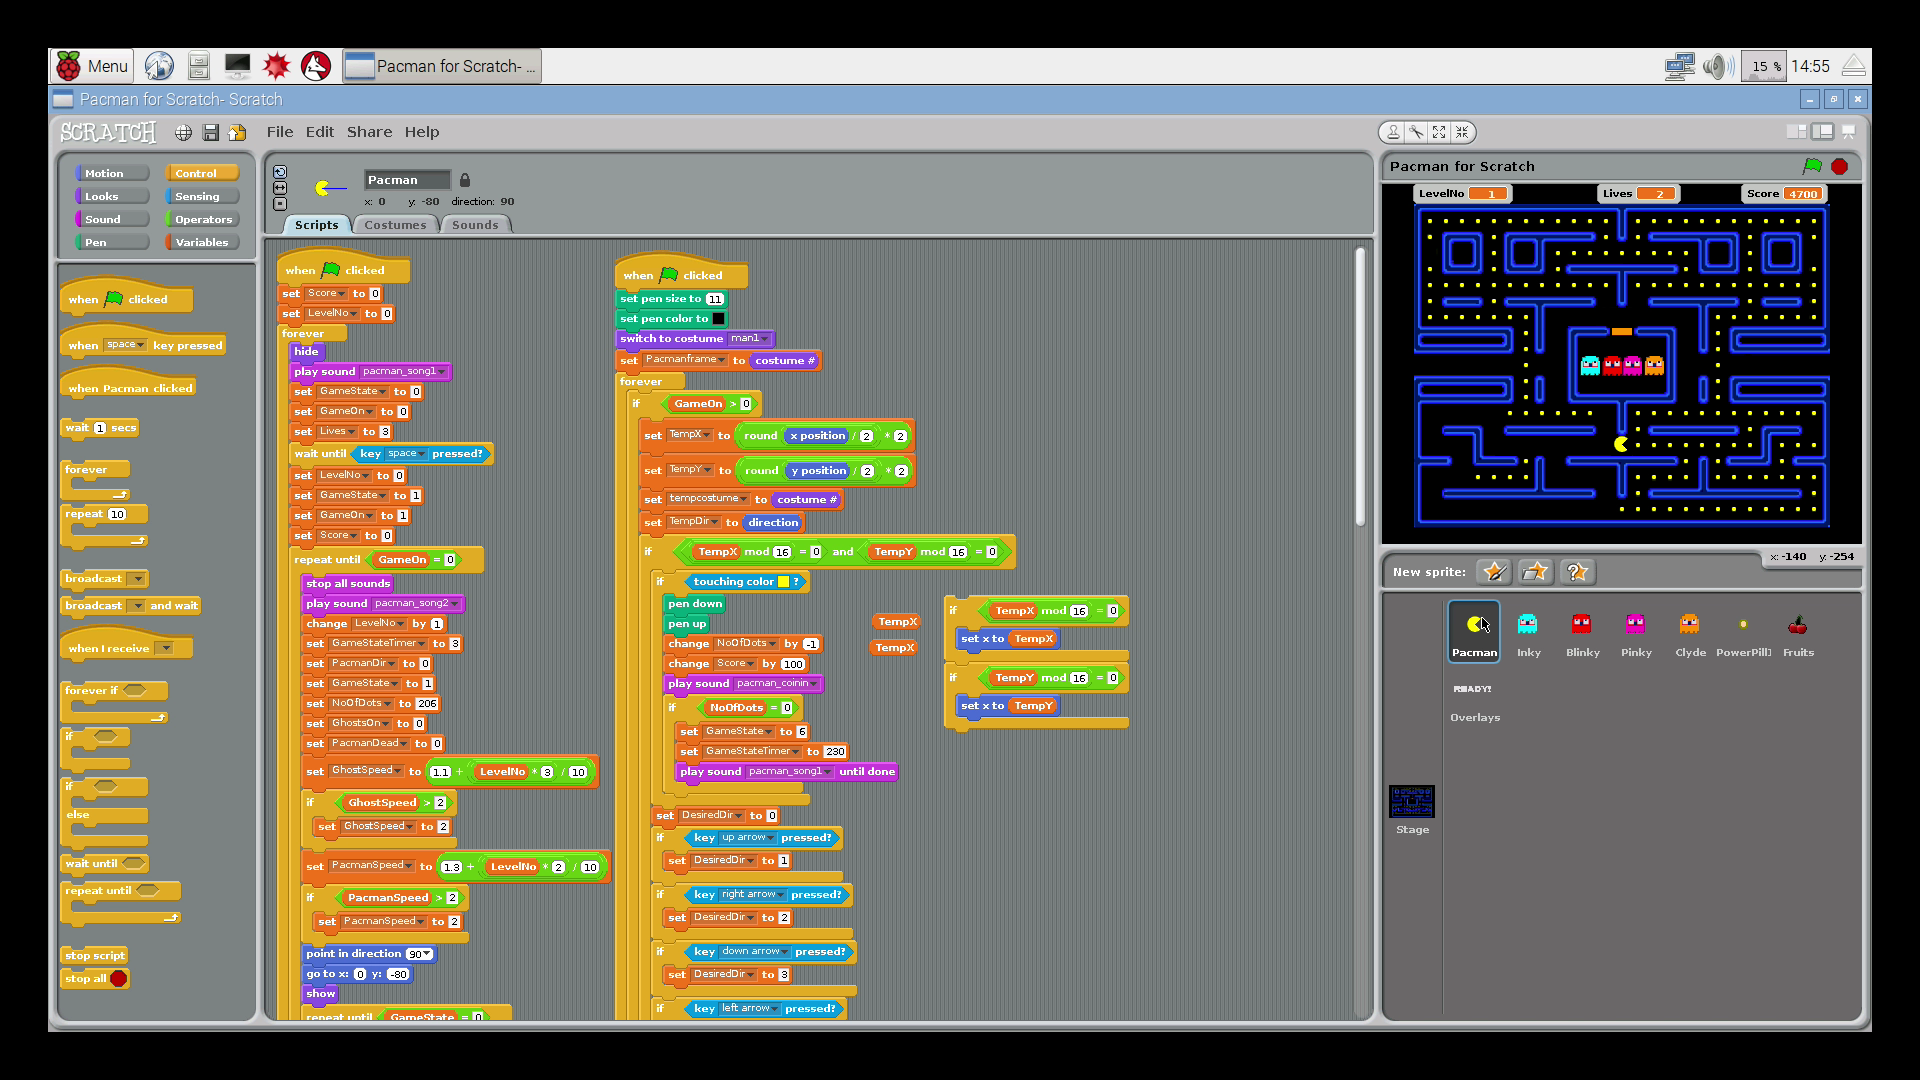 Pac Man as created in Scratch